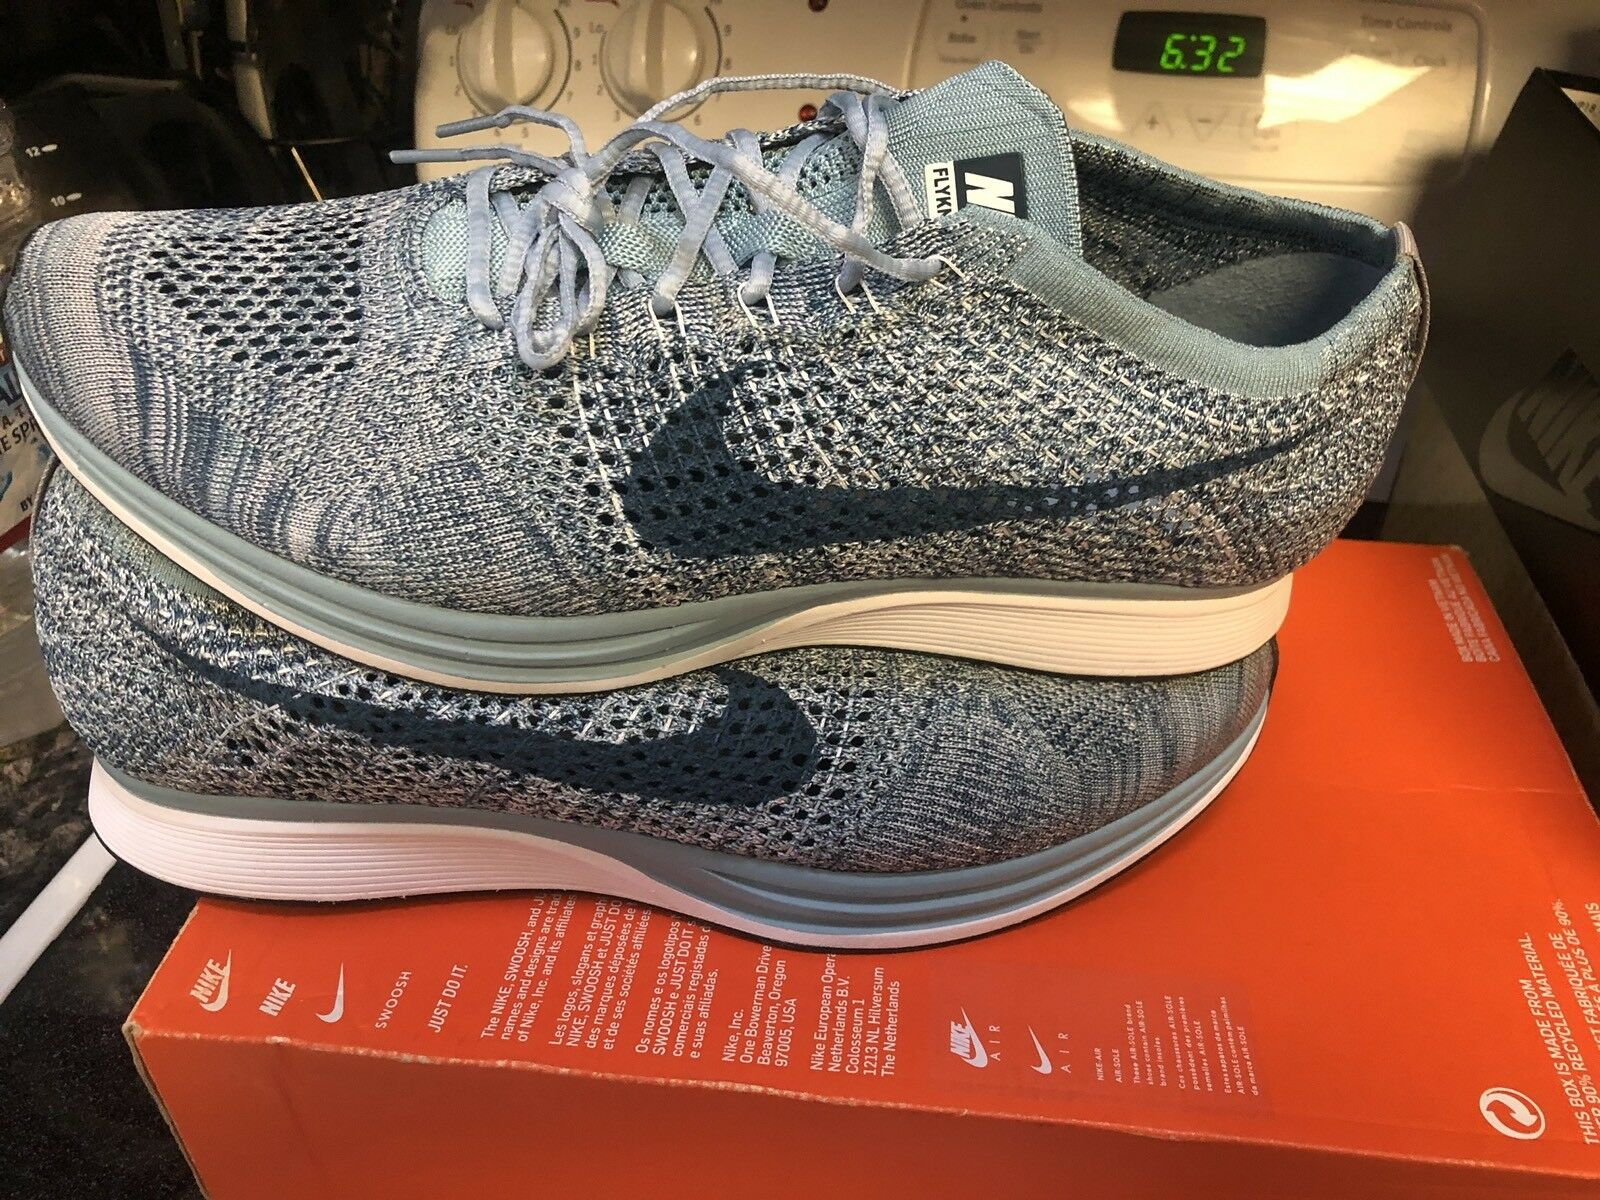 The most popular shoes for men and women Nike Flyknit Racer Macaron Pack Price reduction